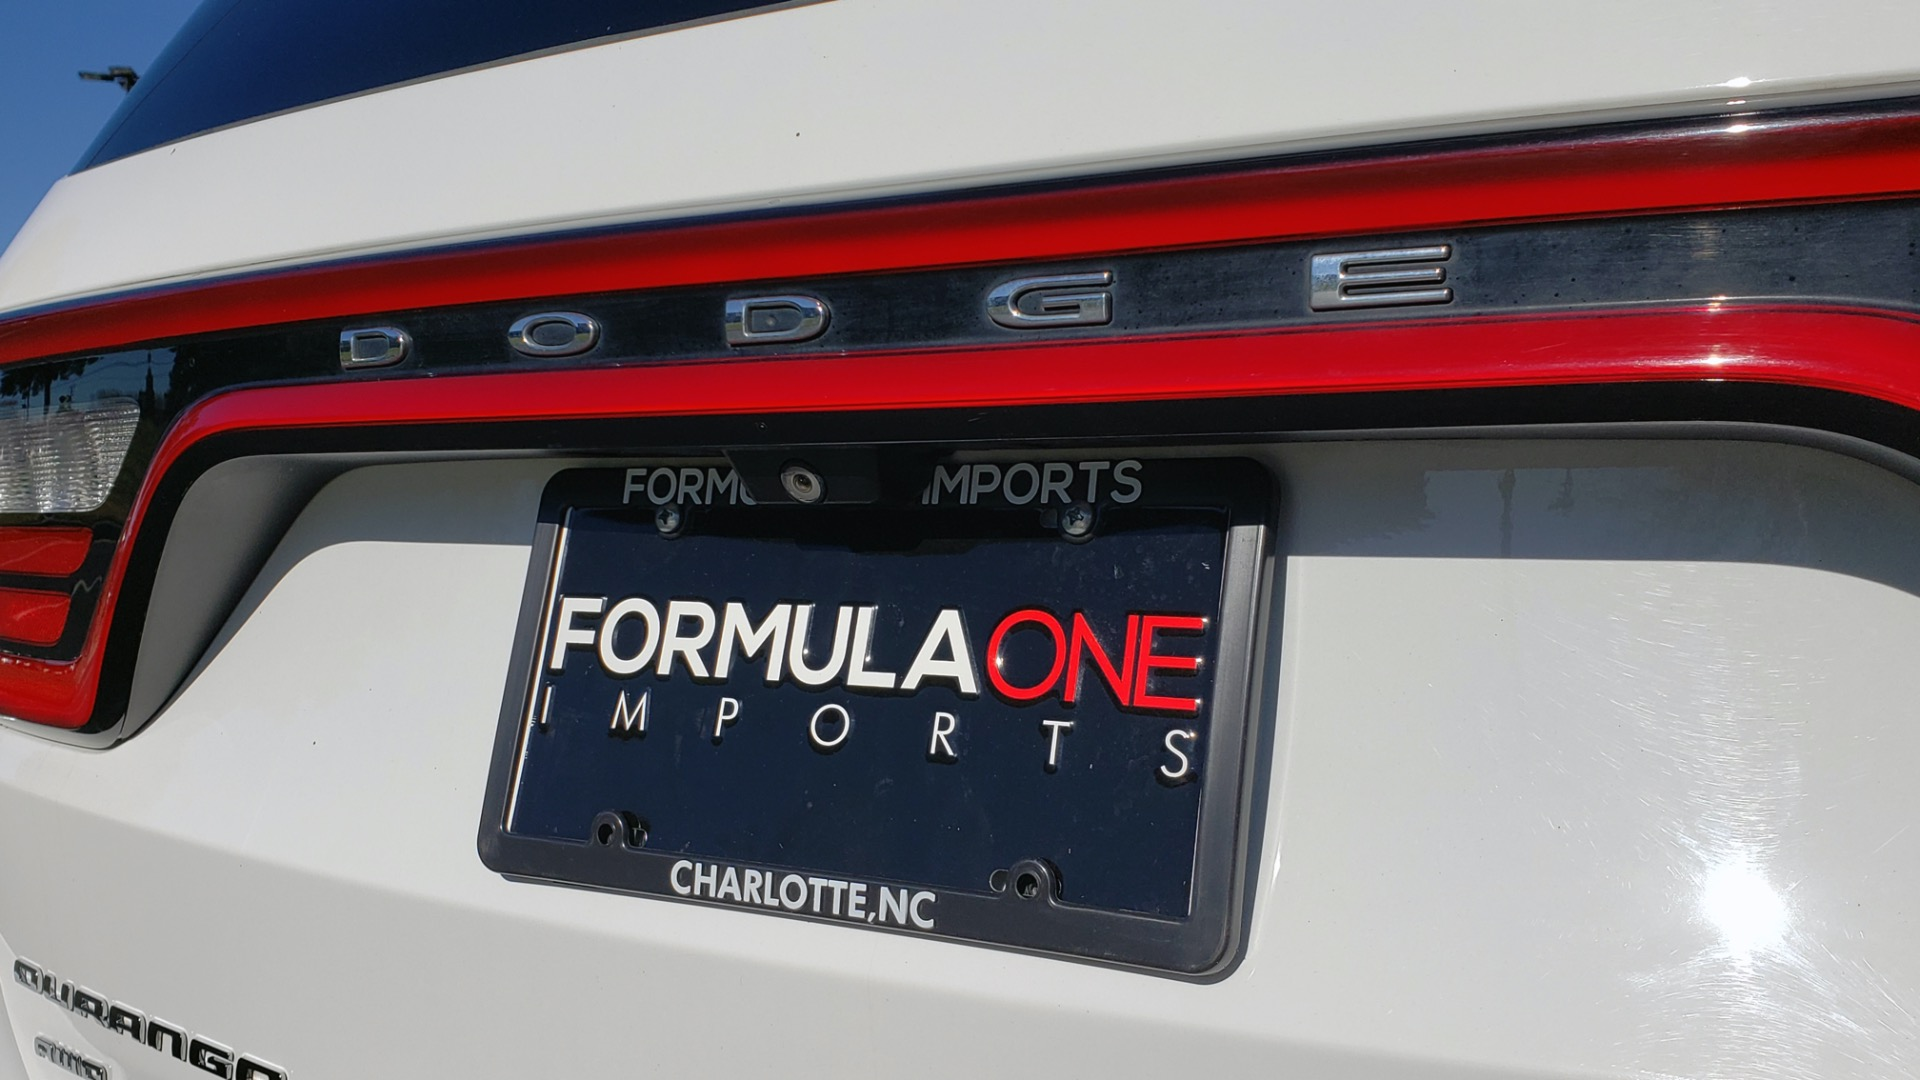 Used 2015 Dodge DURANGO LIMITED AWD / 3.6L V6 / 8-SPD AUTO / 3-ROW / REARVIEW for sale Sold at Formula Imports in Charlotte NC 28227 34